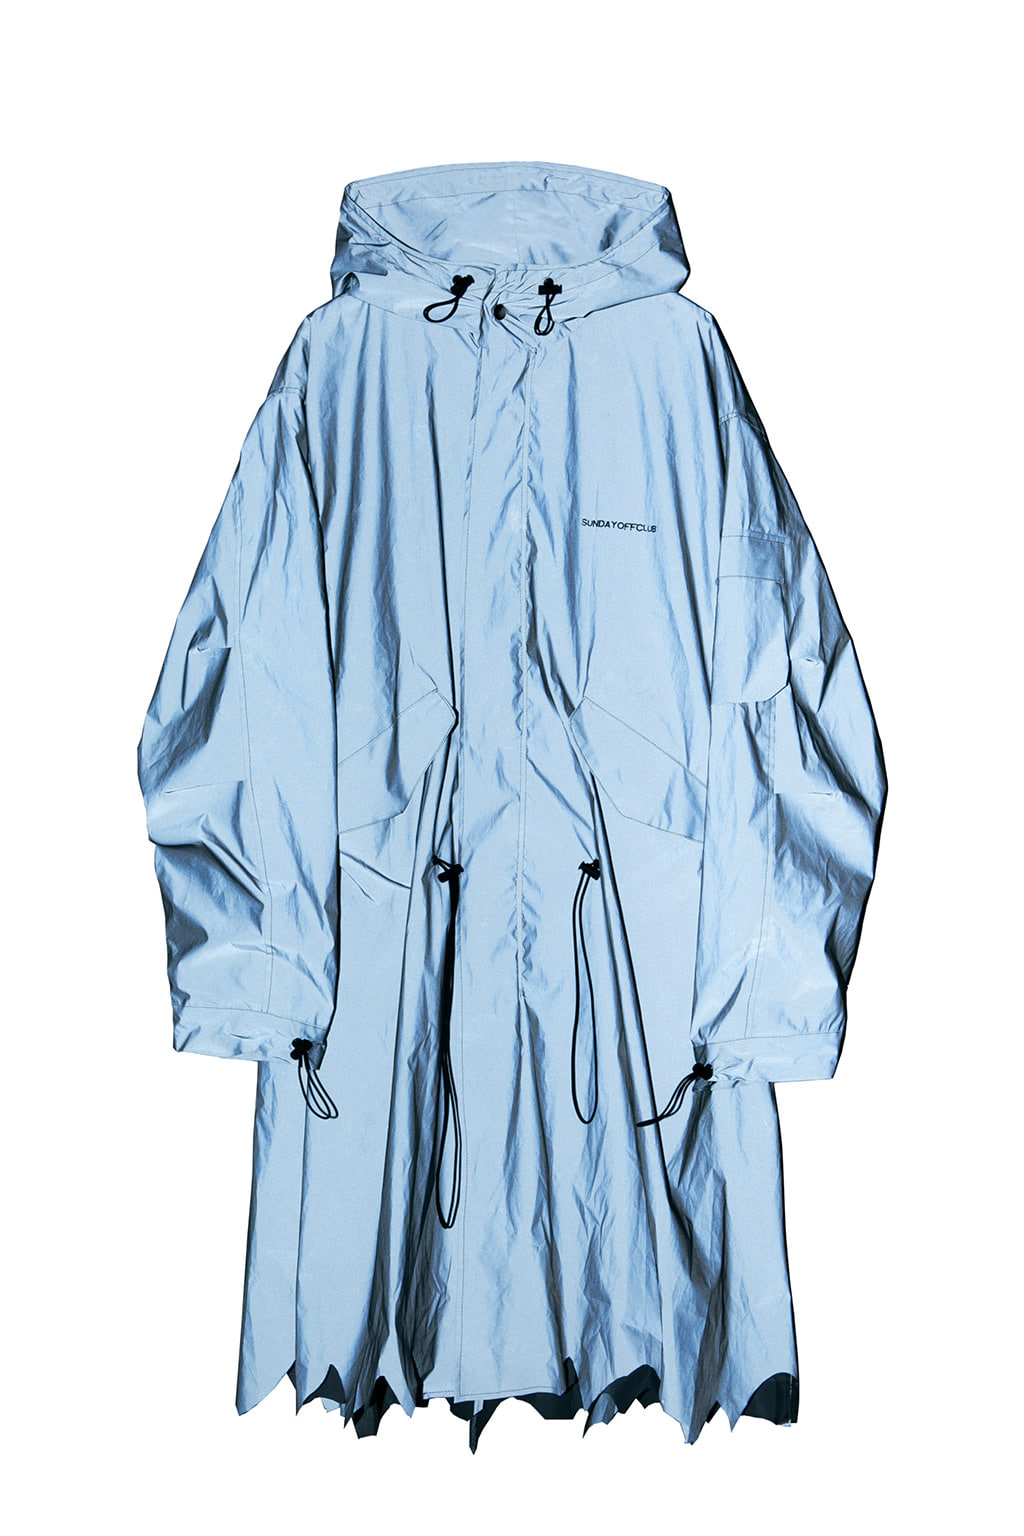 patch parka coat - reflective